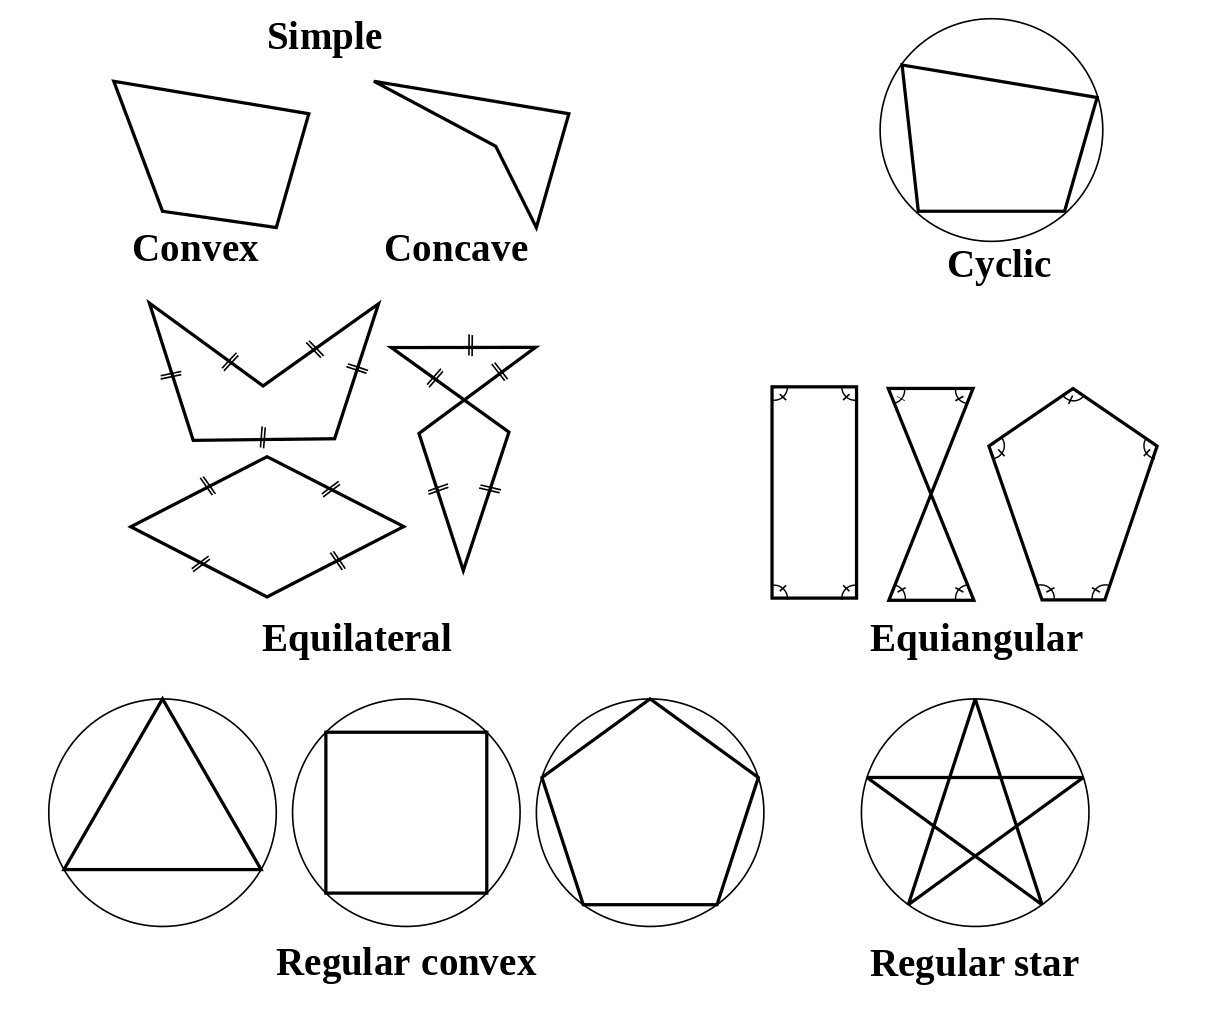 Worksheet On Regular Polygons